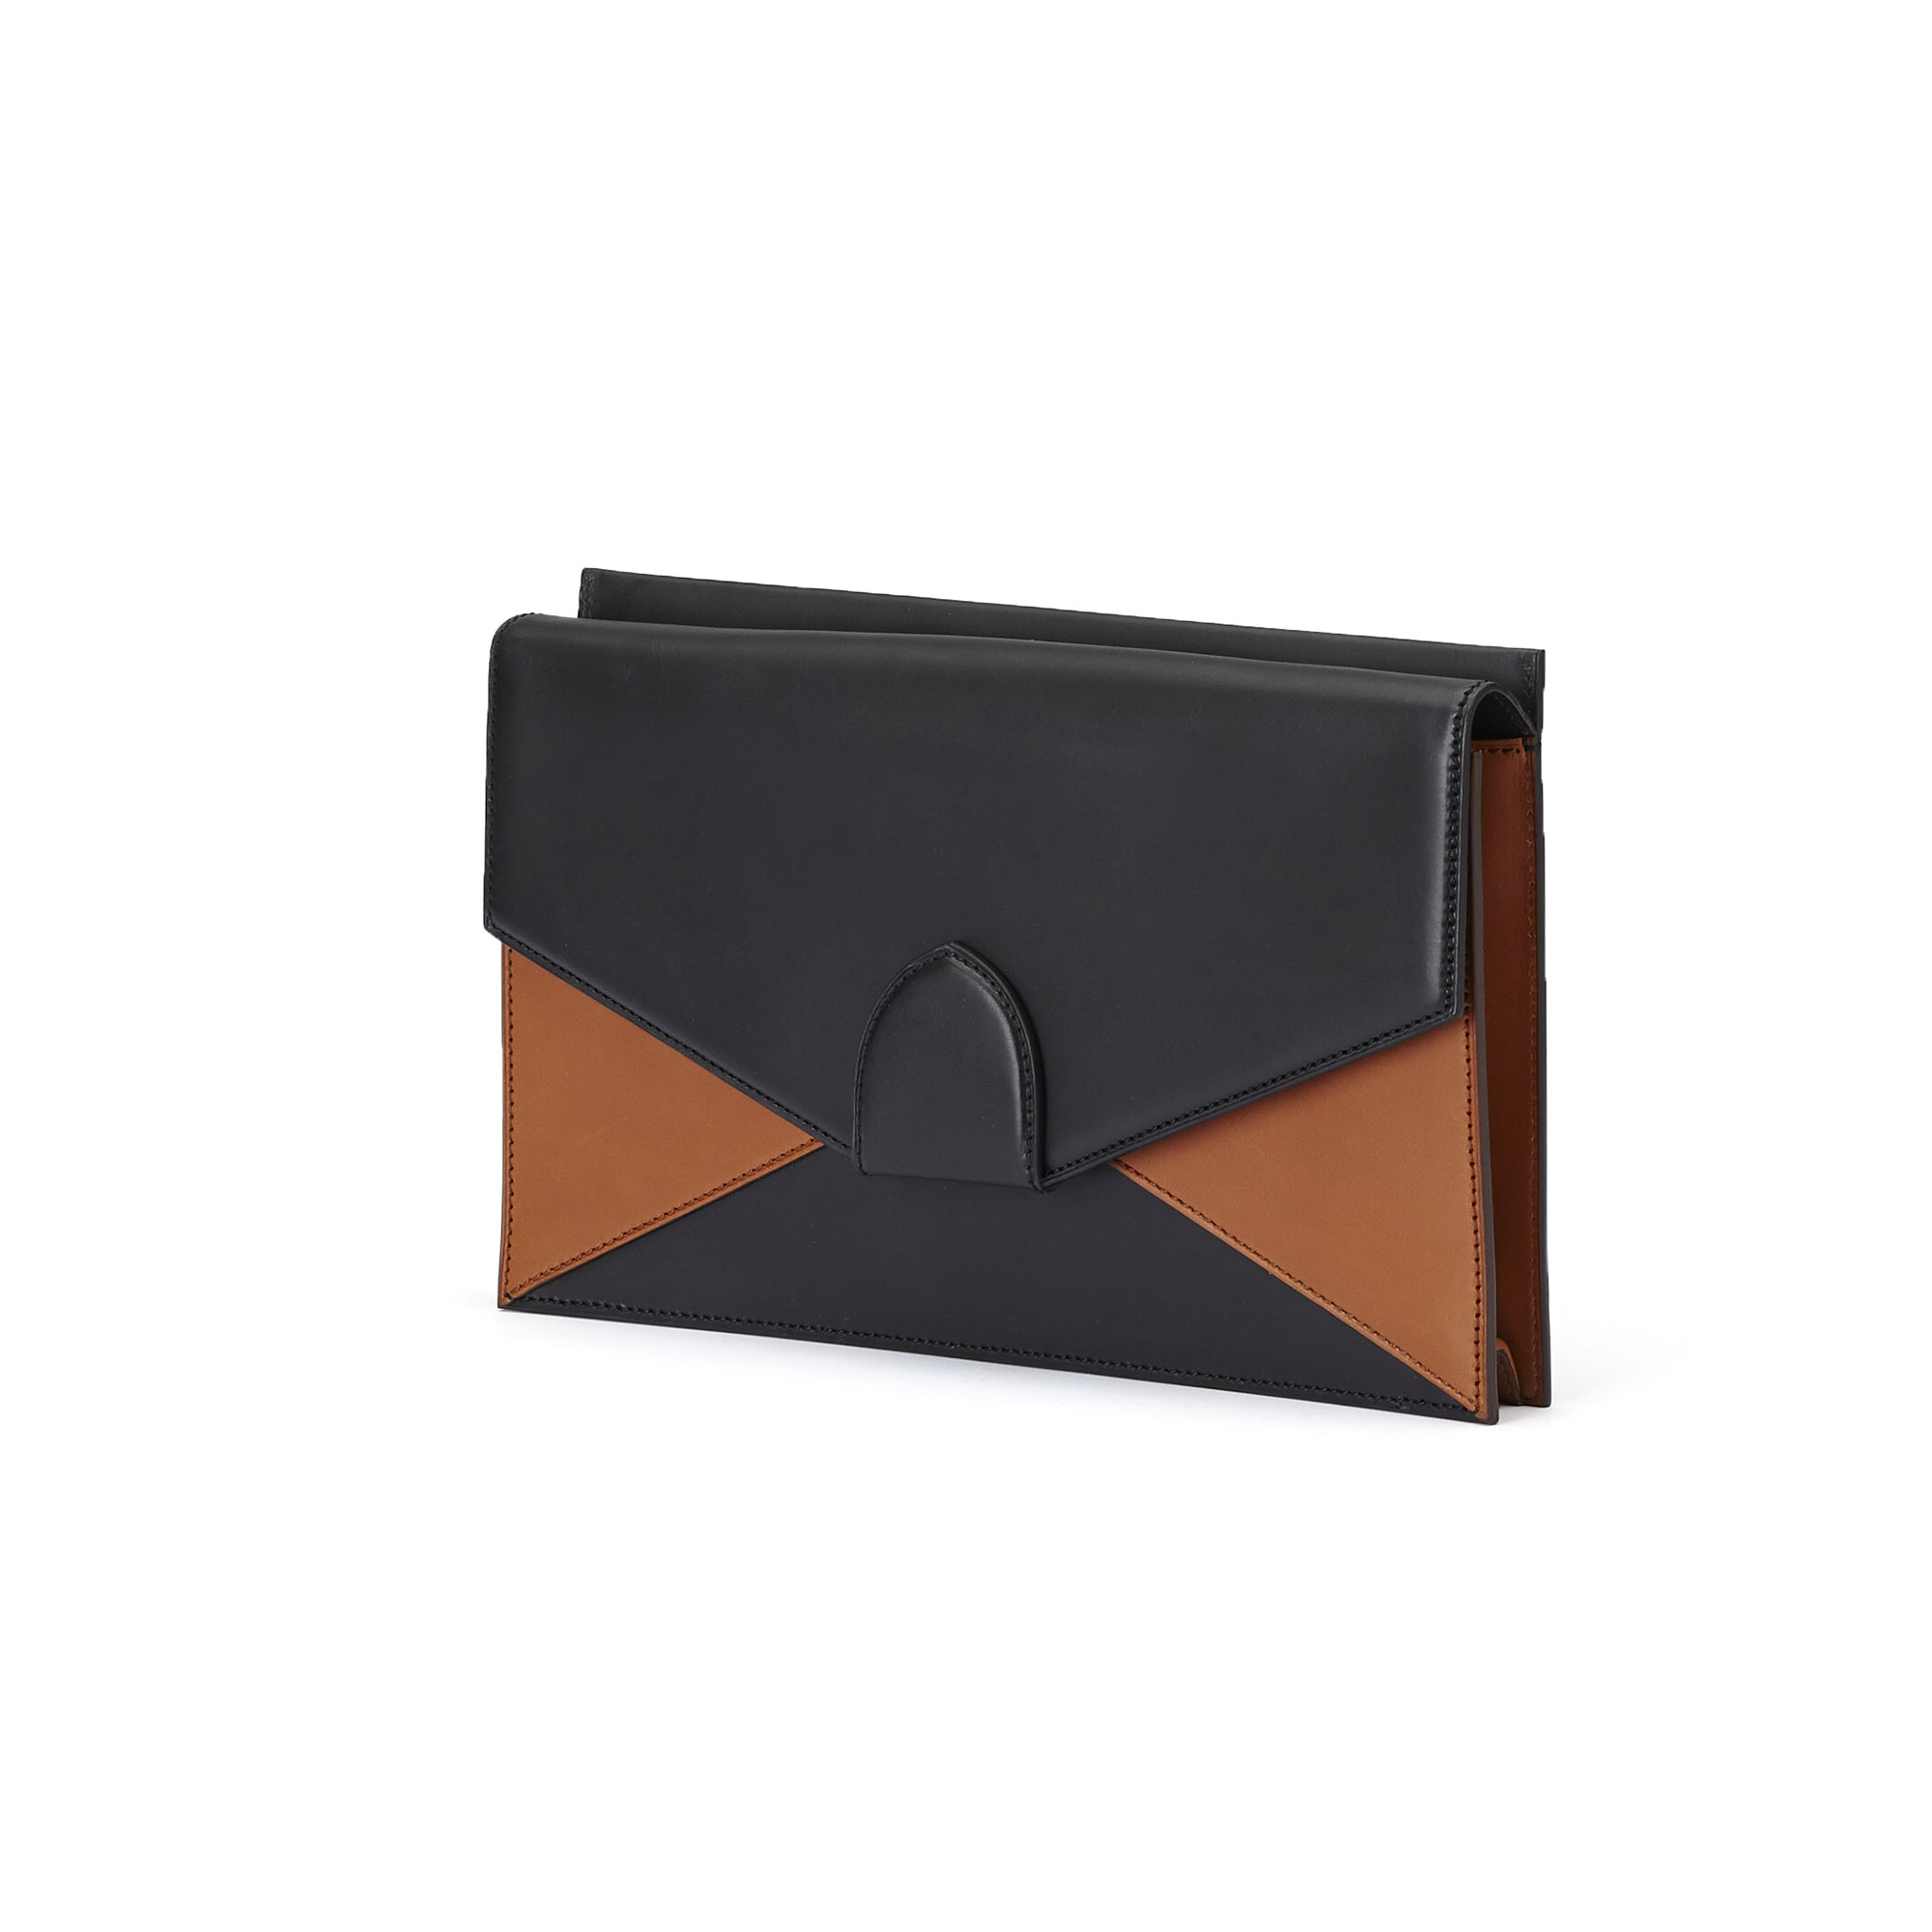 The black and terrabruciata french calf Dafne Clutch bag by Bertoni 1949 02